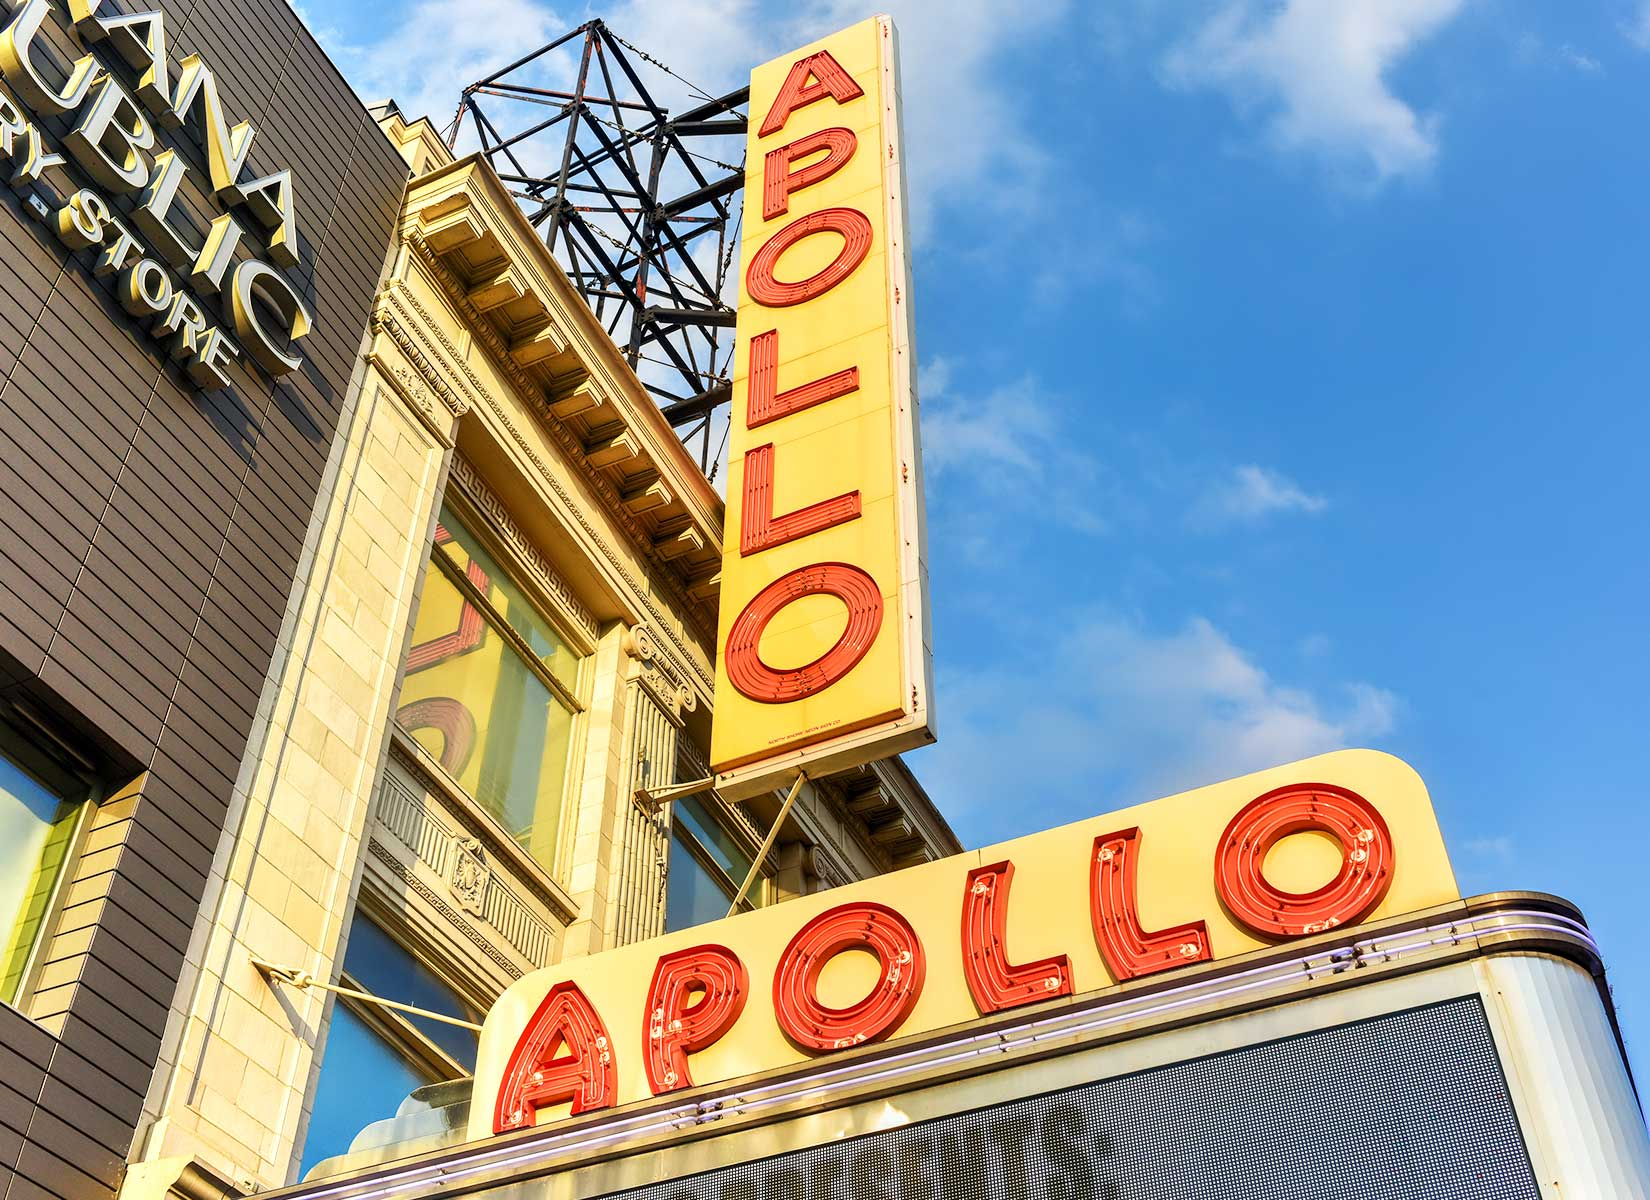 Harlem's world-famous Apollo Theater at 253 West 125th Street. Ella Fitzgerald, Billie Holiday, and Sammy Davis Jr. are just some of the legends to have graced its stage. Today, the theater is home to the Apollo Theater Foundation, a not-for-profit organization presenting concerts, performing arts, education and community outreach programs.